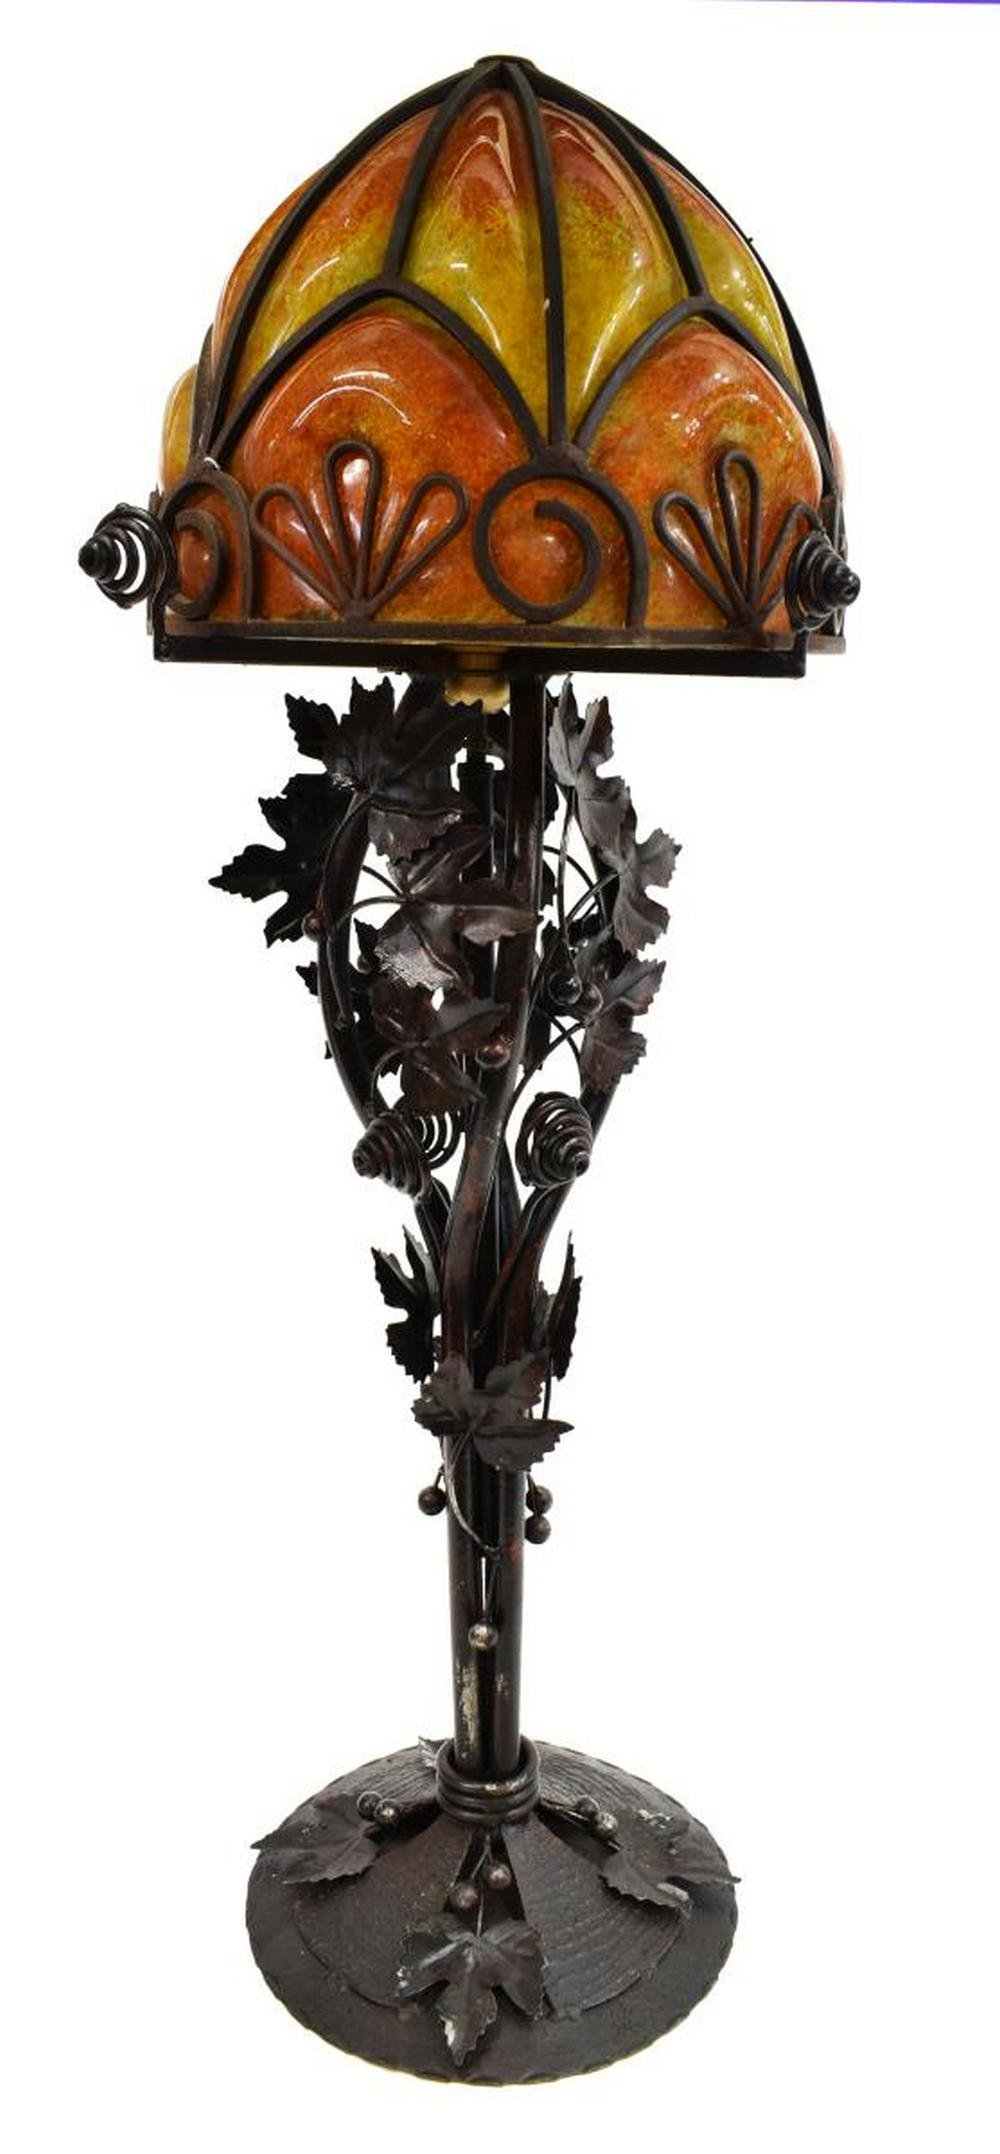 FRENCH ART NOUVEAU WROUGHT IRON & GLASS TABLE LAMP